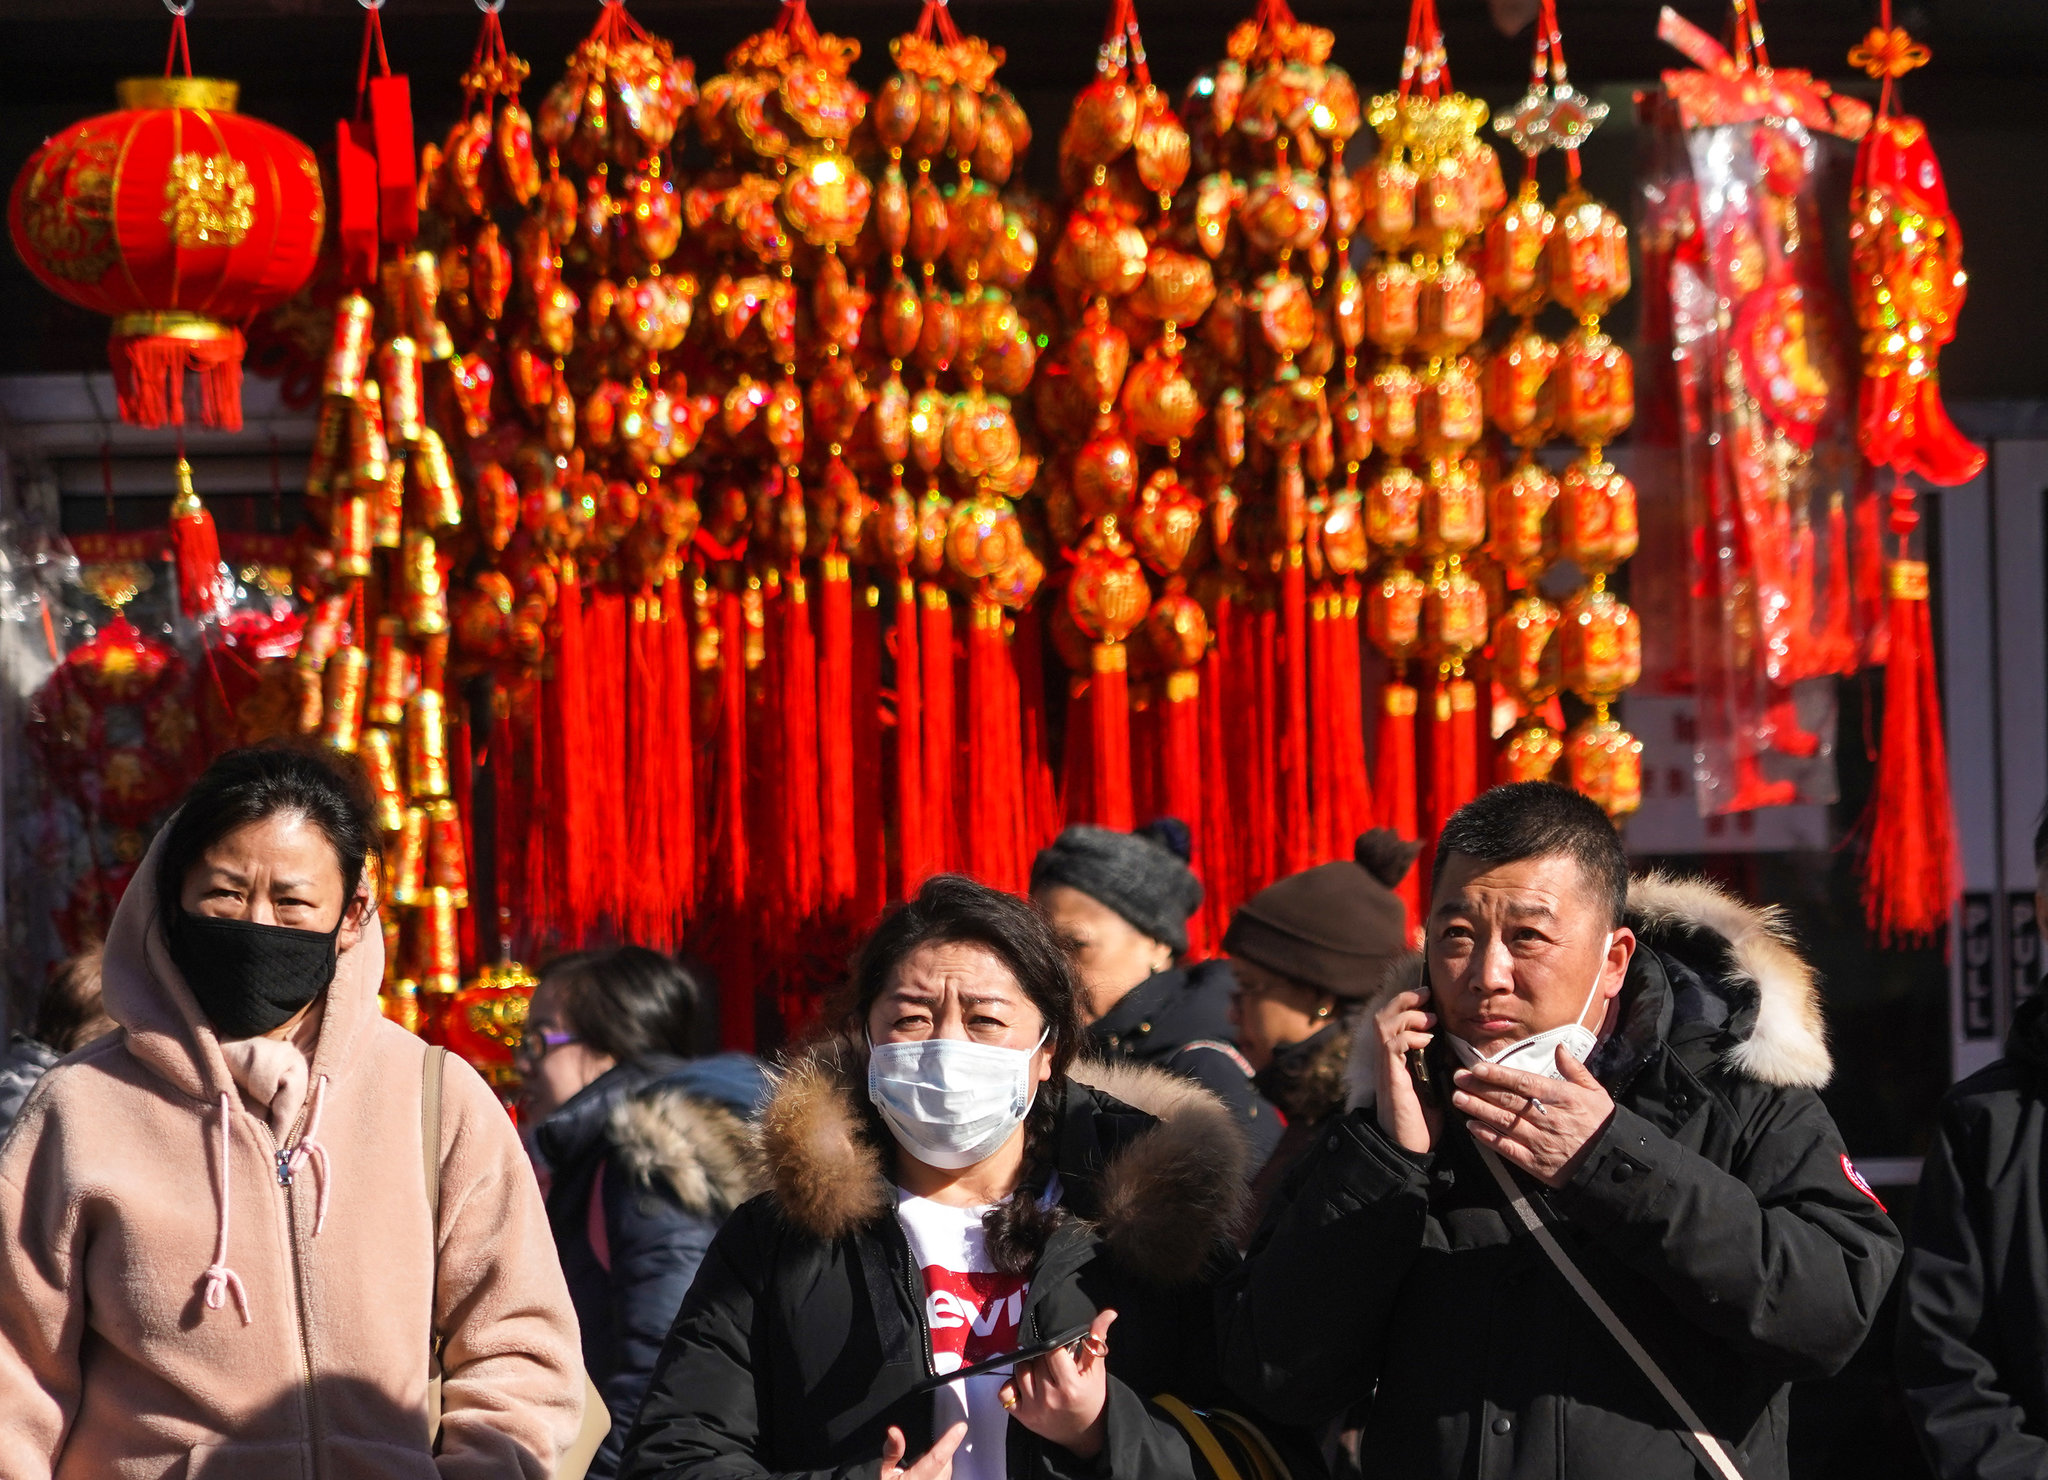 Coronavirus in New York: Lunar New Year Events Canceled Over Fears ...